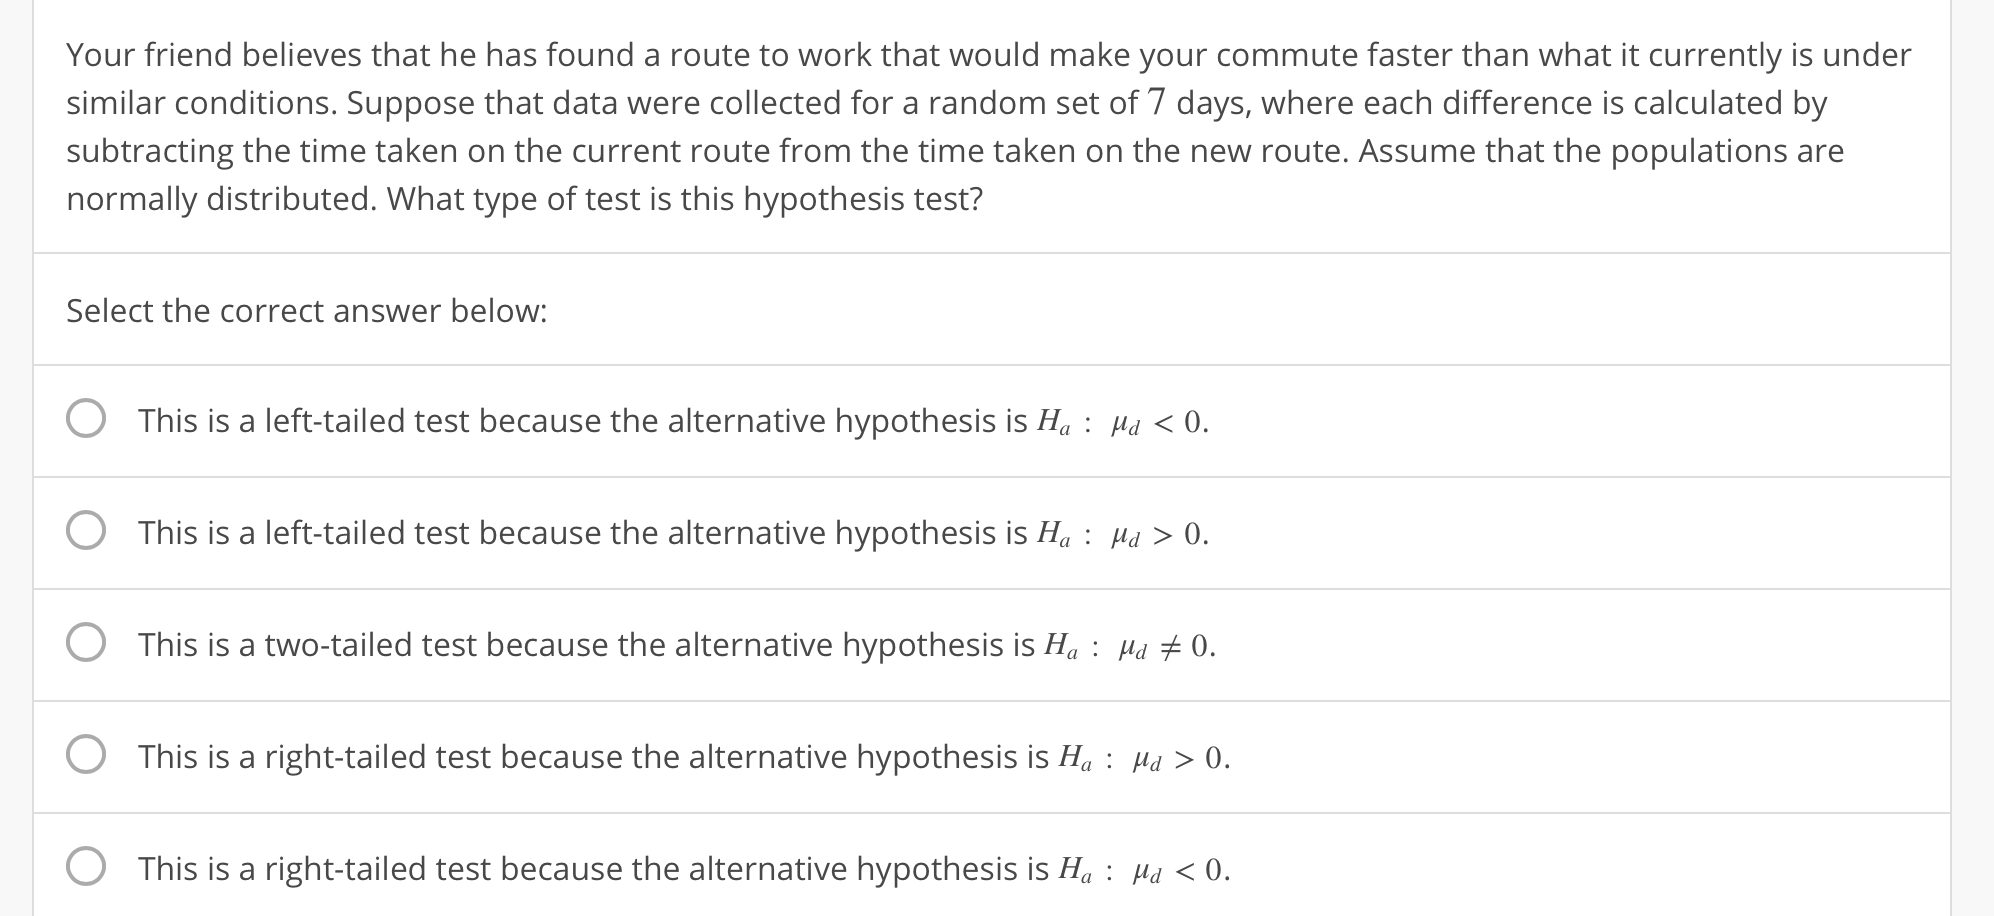 Your friend believes that he has found a route to work that would make your commute faster than what it currently is under similar conditions. Suppose that data were collected for a random set of 7 days, where each difference is calculated by subtracting the time taken on the current route from the time taken on the new route. Assume that the populations are normally distributed. What type of test is this hypothesis test? Select the correct answer below: O This is a left-tailed test because the alternative hypothesis is H: H 0 O This is a left-tailed test because the alternative hypothesis is H0 O This is a two-tailed test because the alternative hypothesis is H:Hu 0. 0 This is a right-tailed test because the alternative hypothesis is Њ : d > 0. O This is a right-tailed test because the alternative hypothesis is H: H 0.